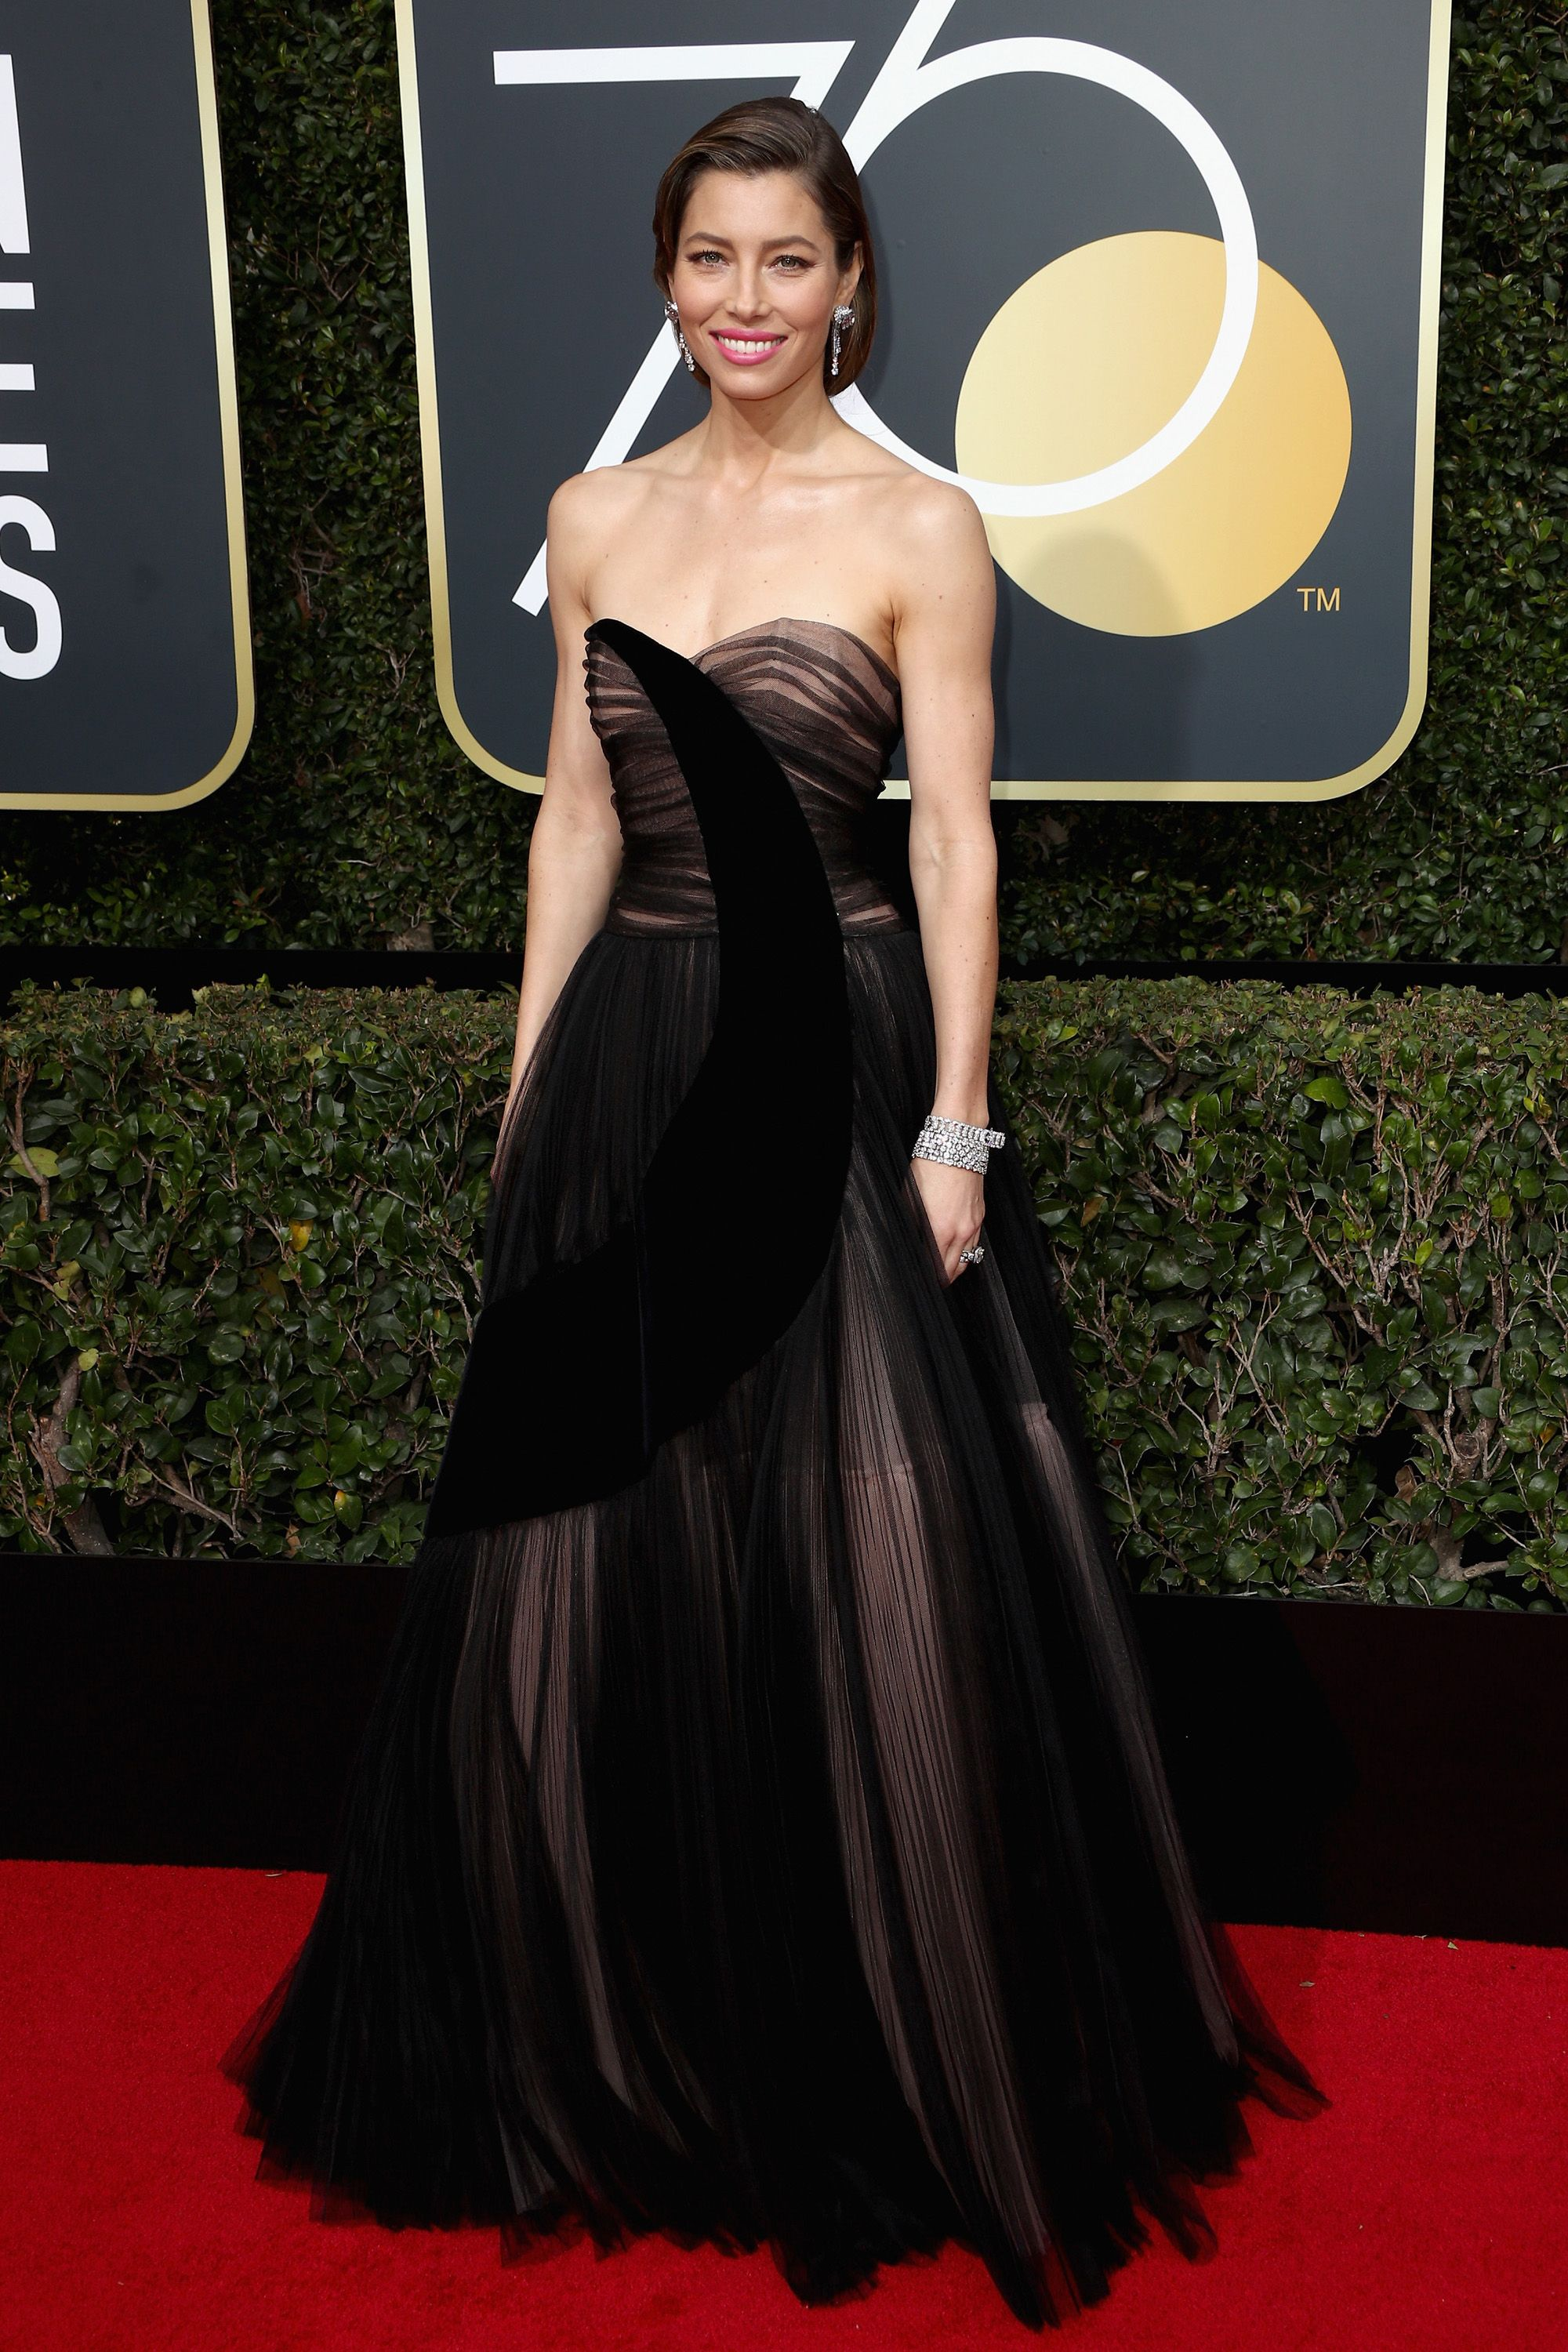 Golden globes fashions red carpet 21